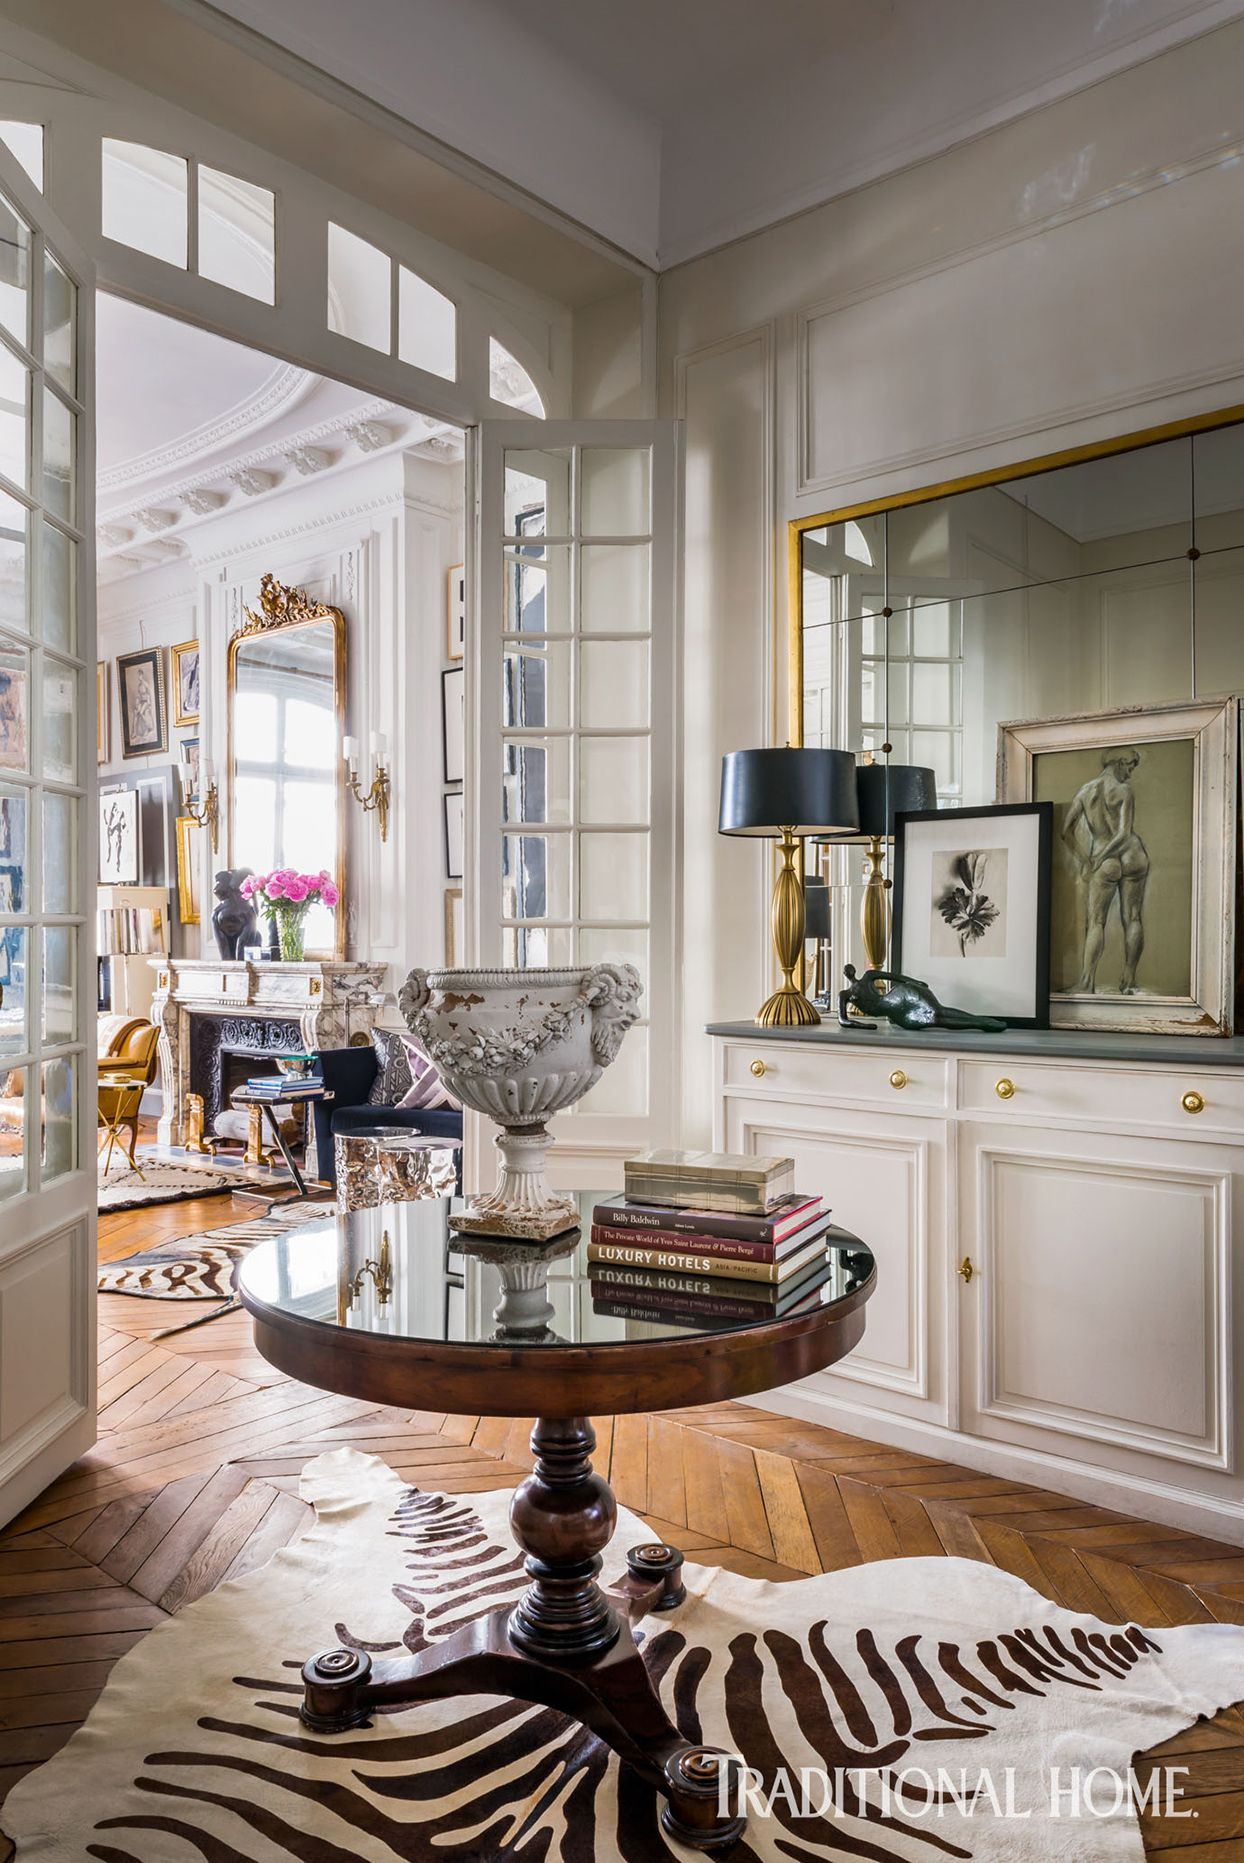 Collected Art And Antiques Lend Authentic Style To An American S Paris Apartment In 2021 Parisian Home Decor Parisian Decor Apartment Decor